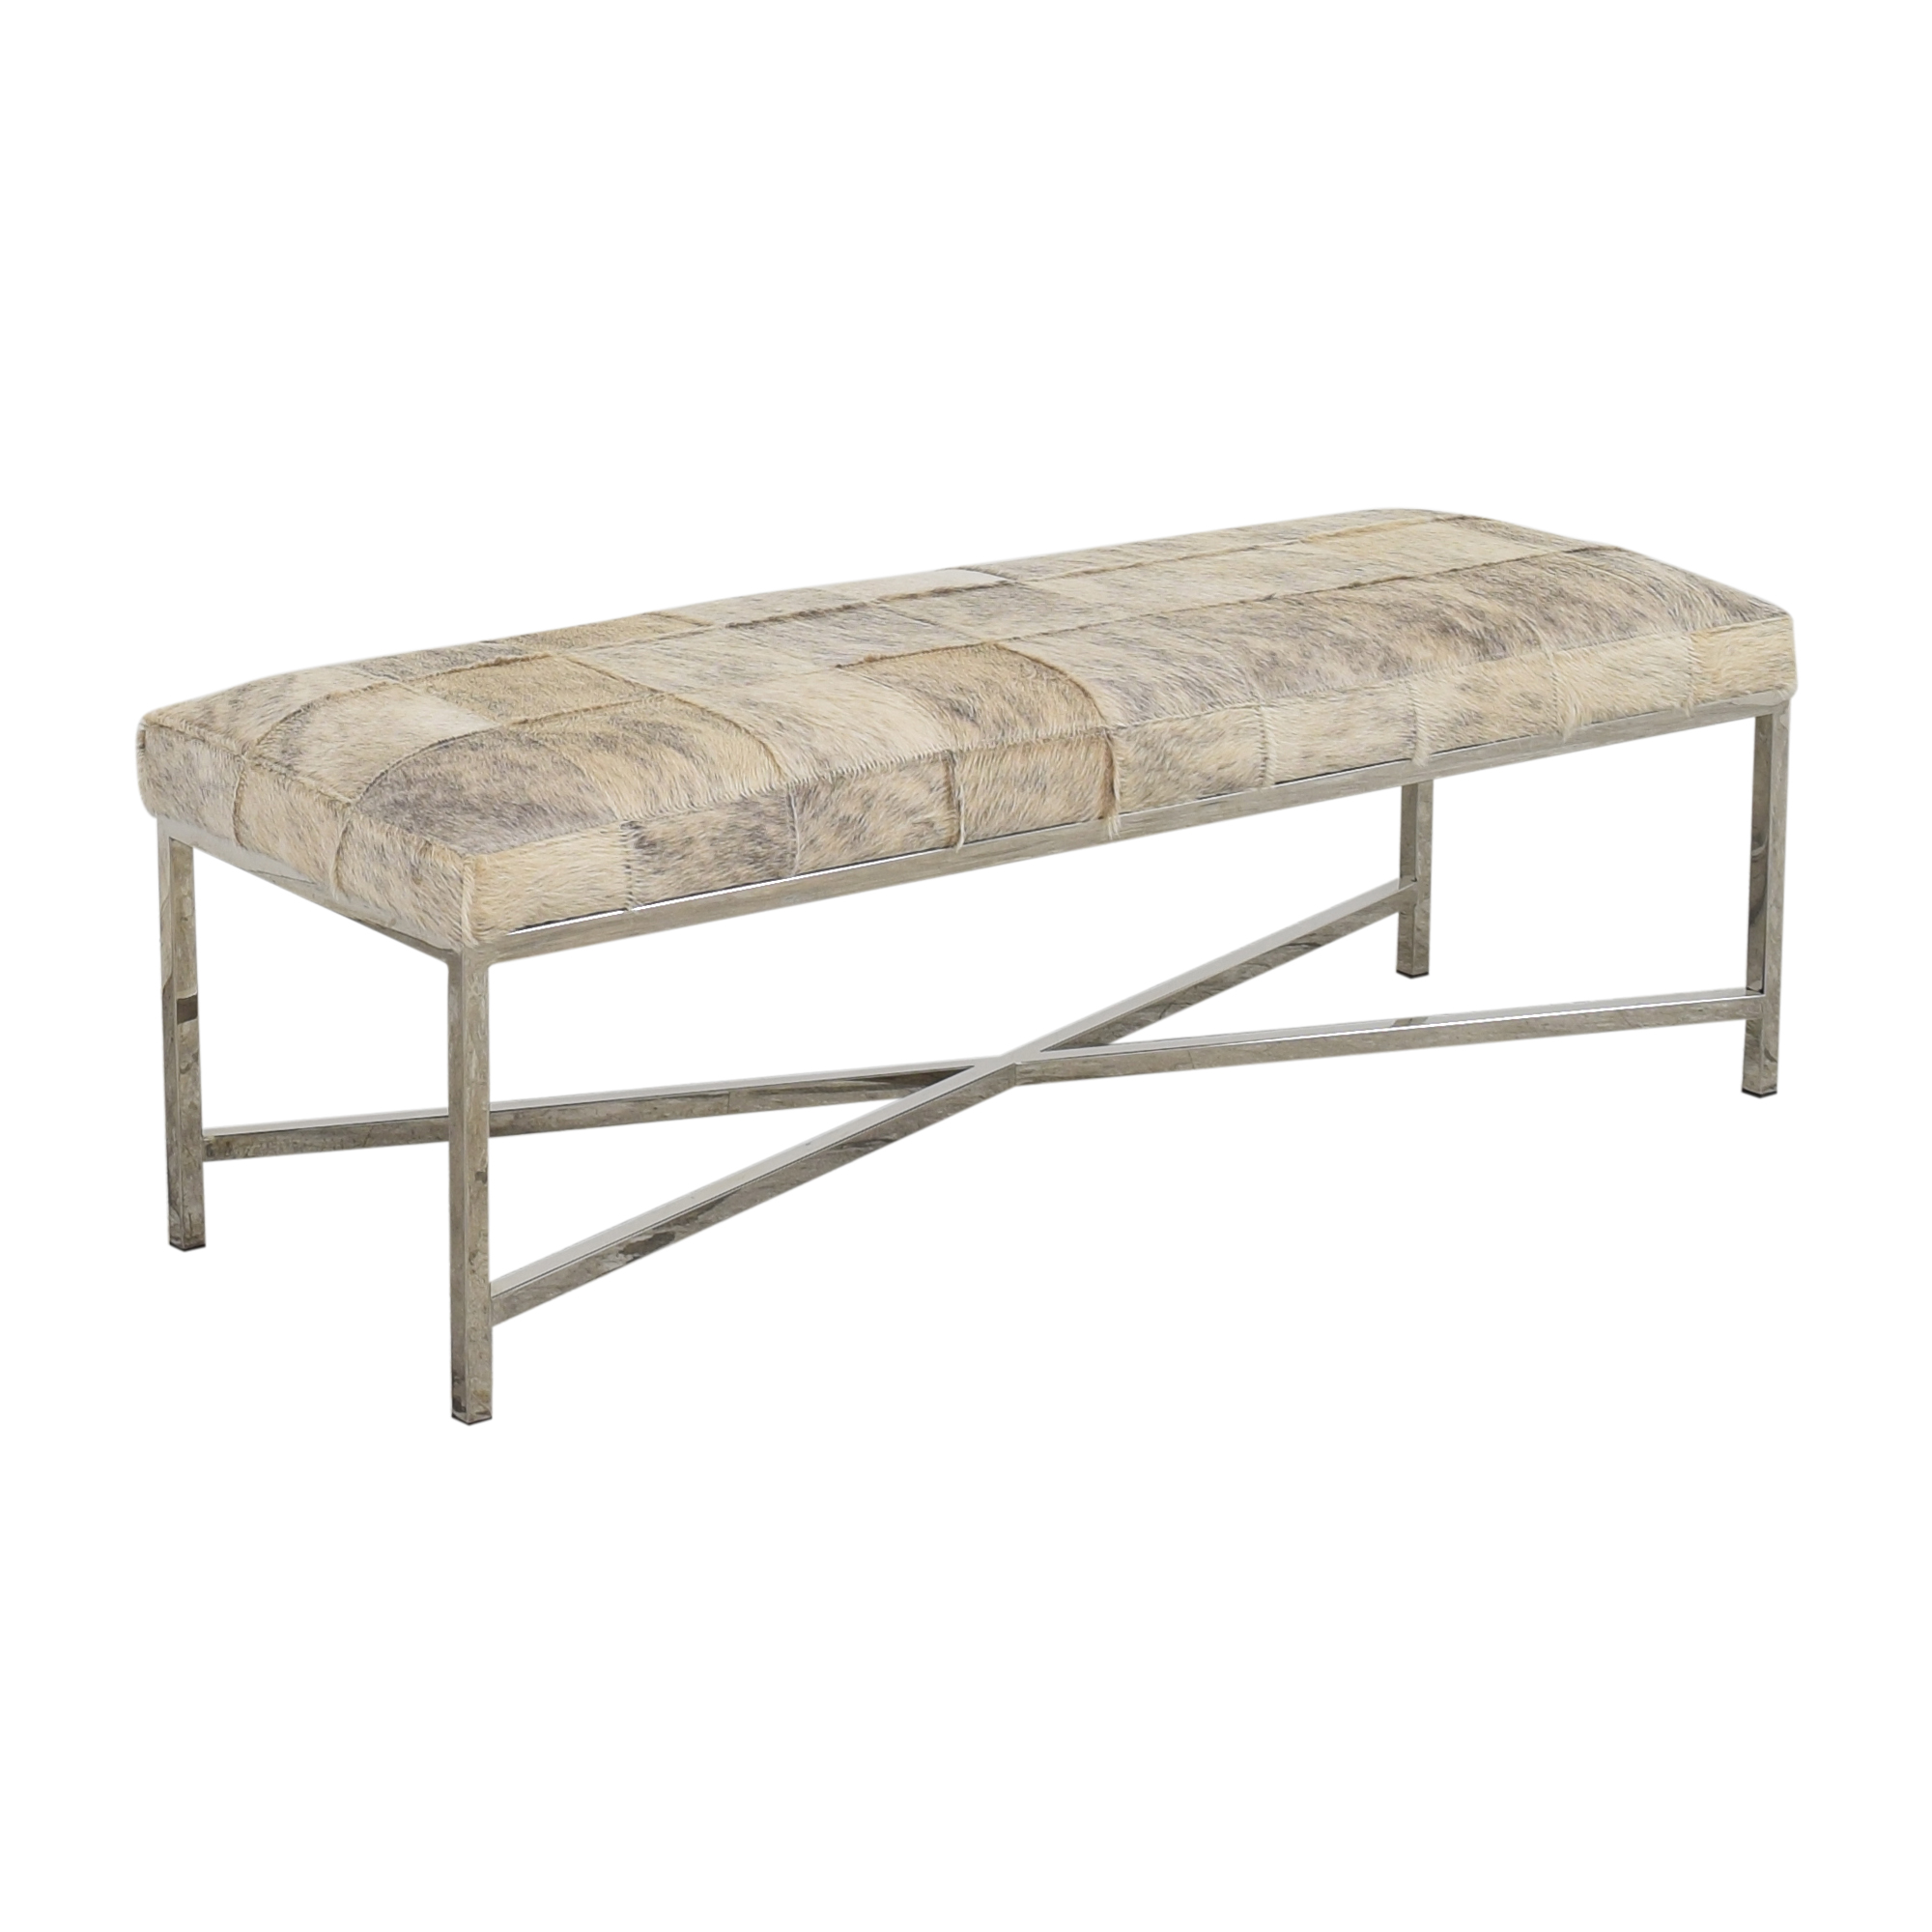 Massoud Massoud Patchwork Bench